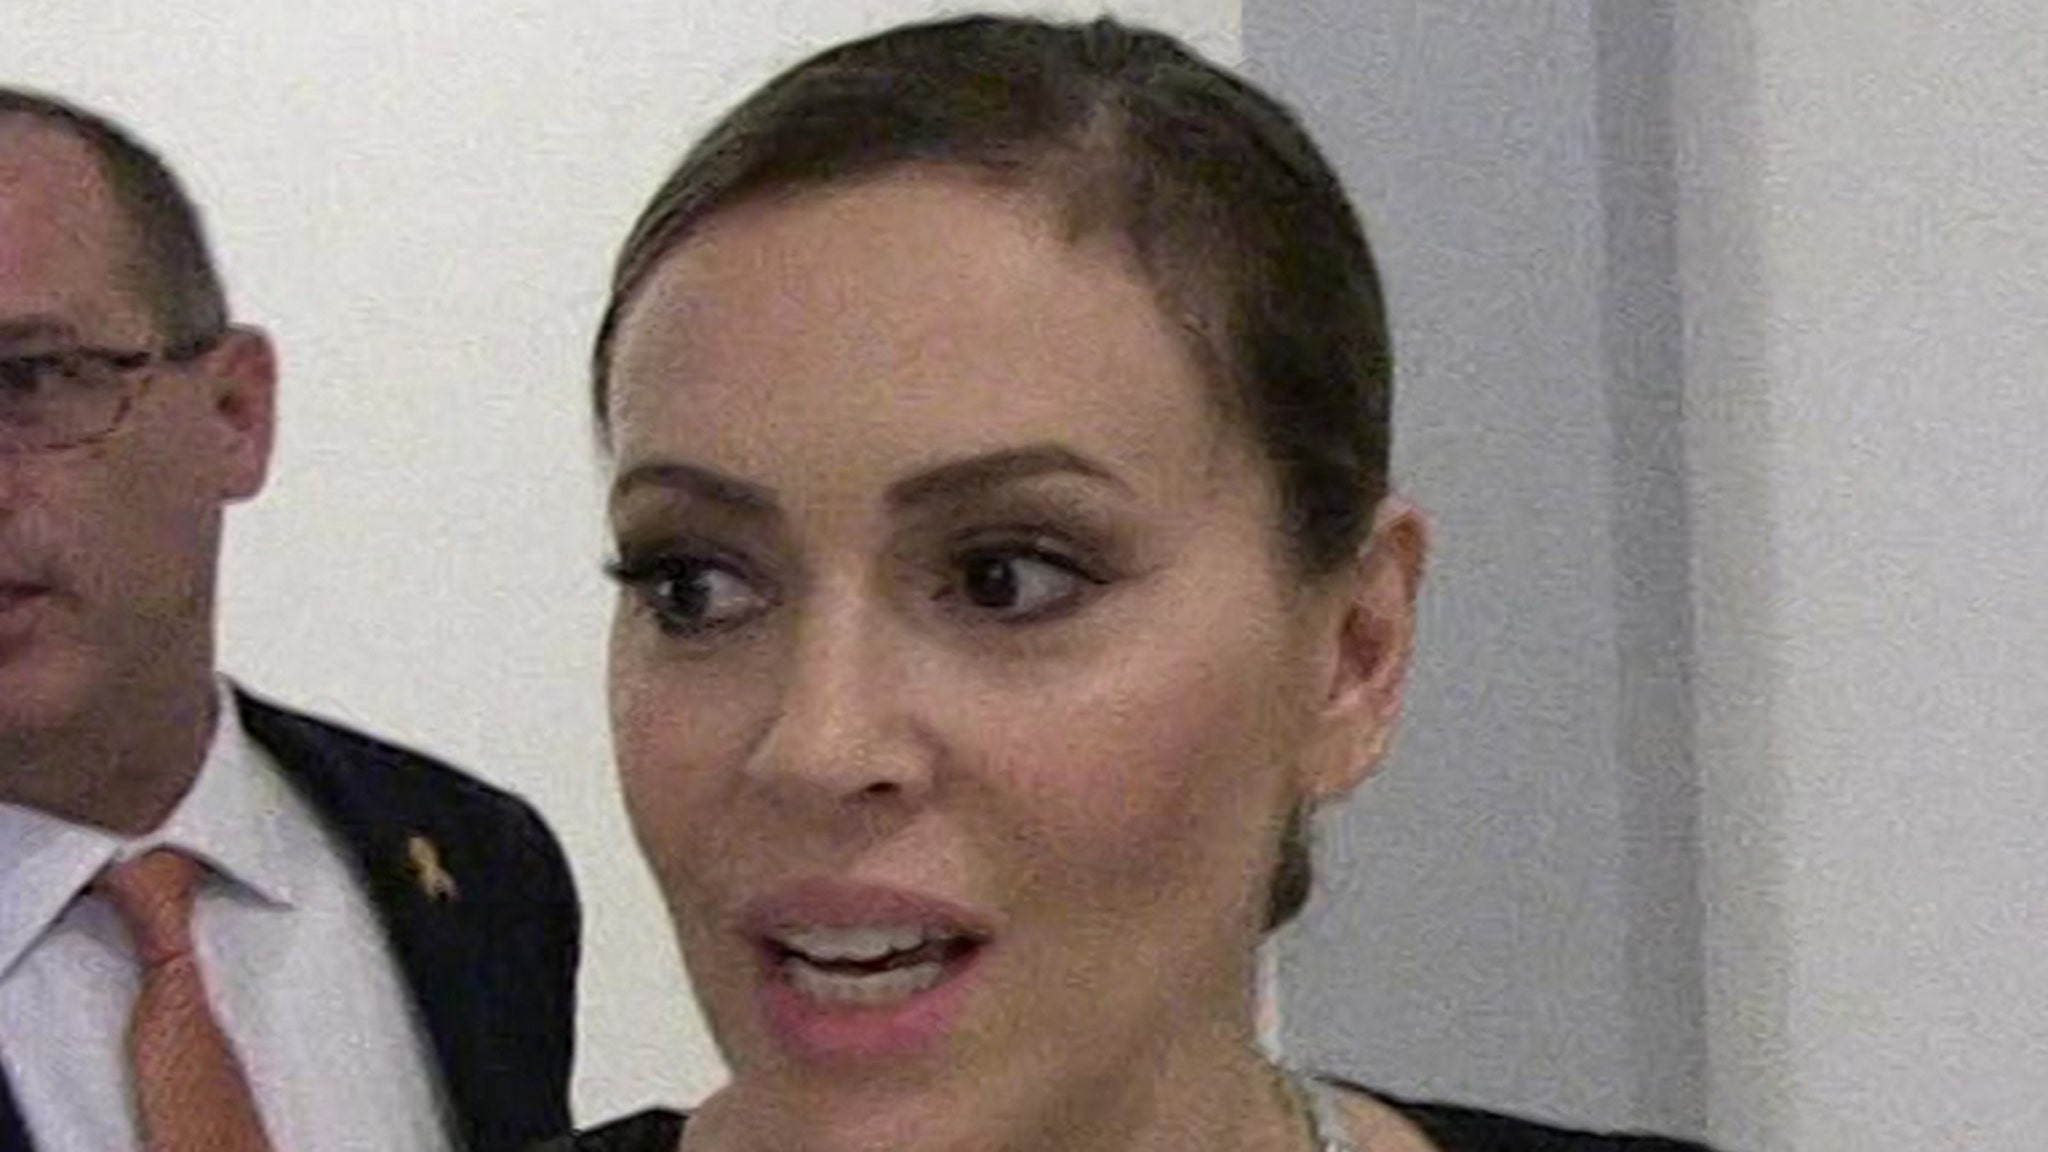 Alyssa Milano Starts CPR on Uncle After Heart Attack, Car Accident thumbnail